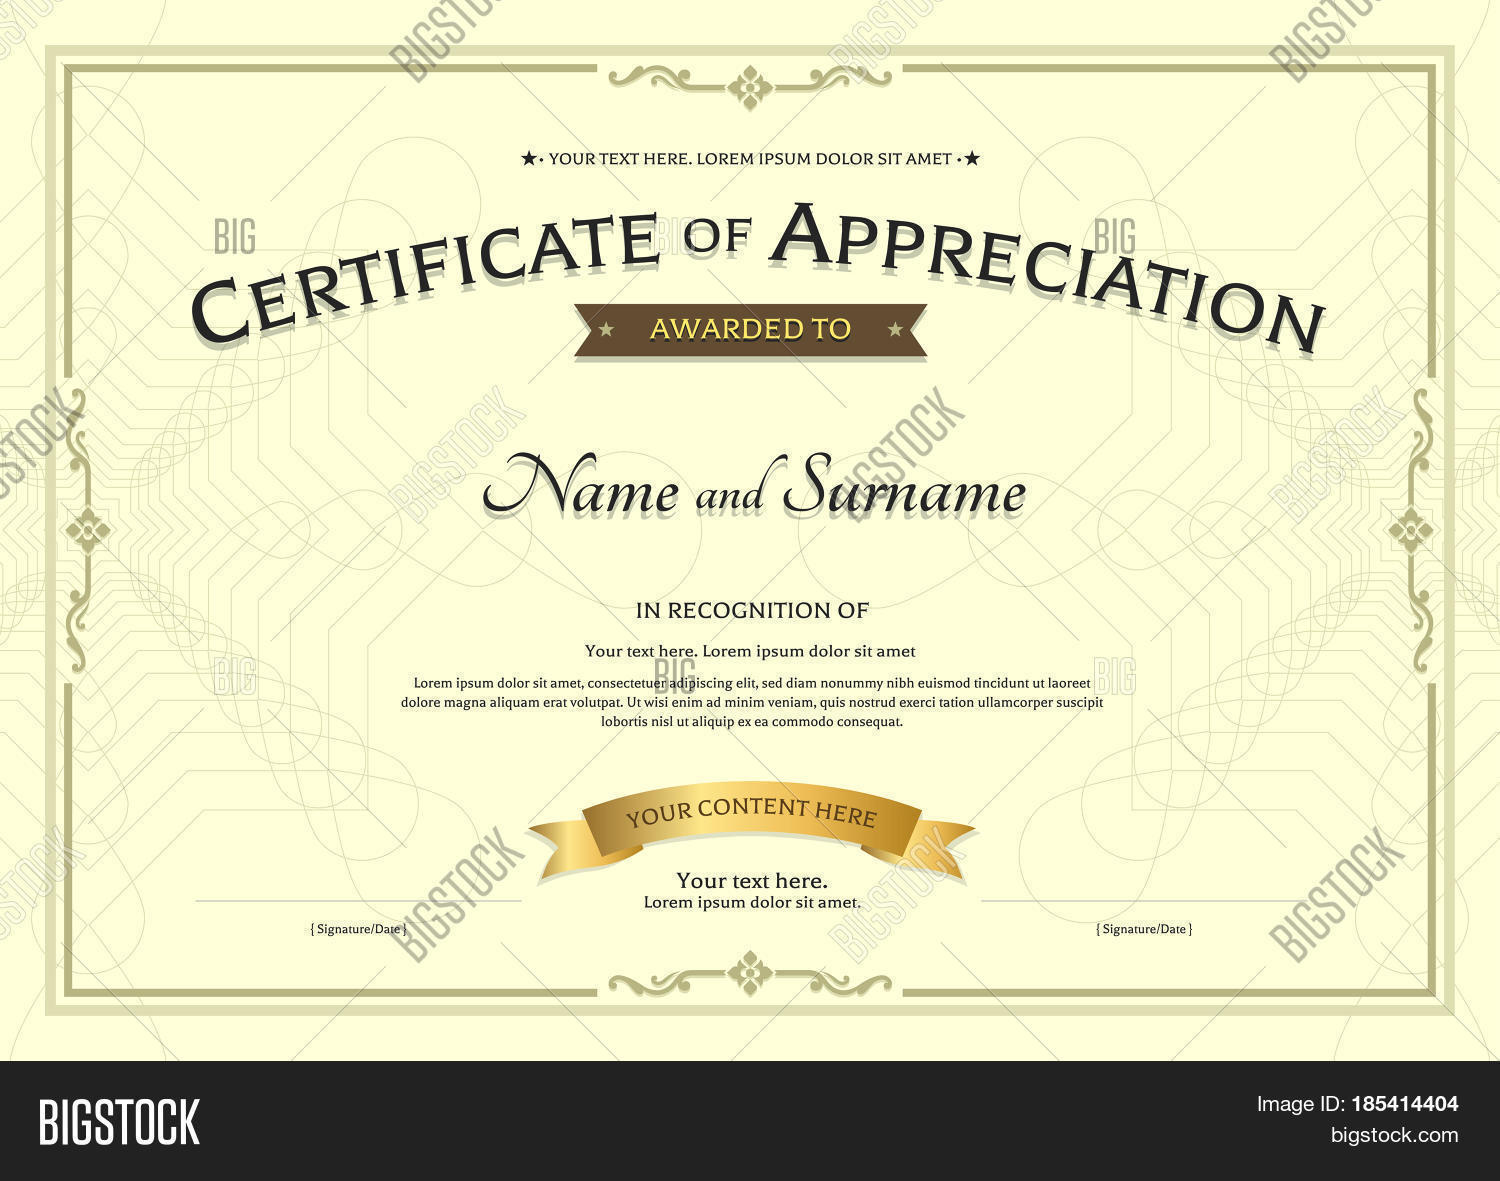 Certificate appreciation template vector photo bigstock certificate of appreciation template with award ribbon on abstract guilloche background with vintage border style yadclub Image collections